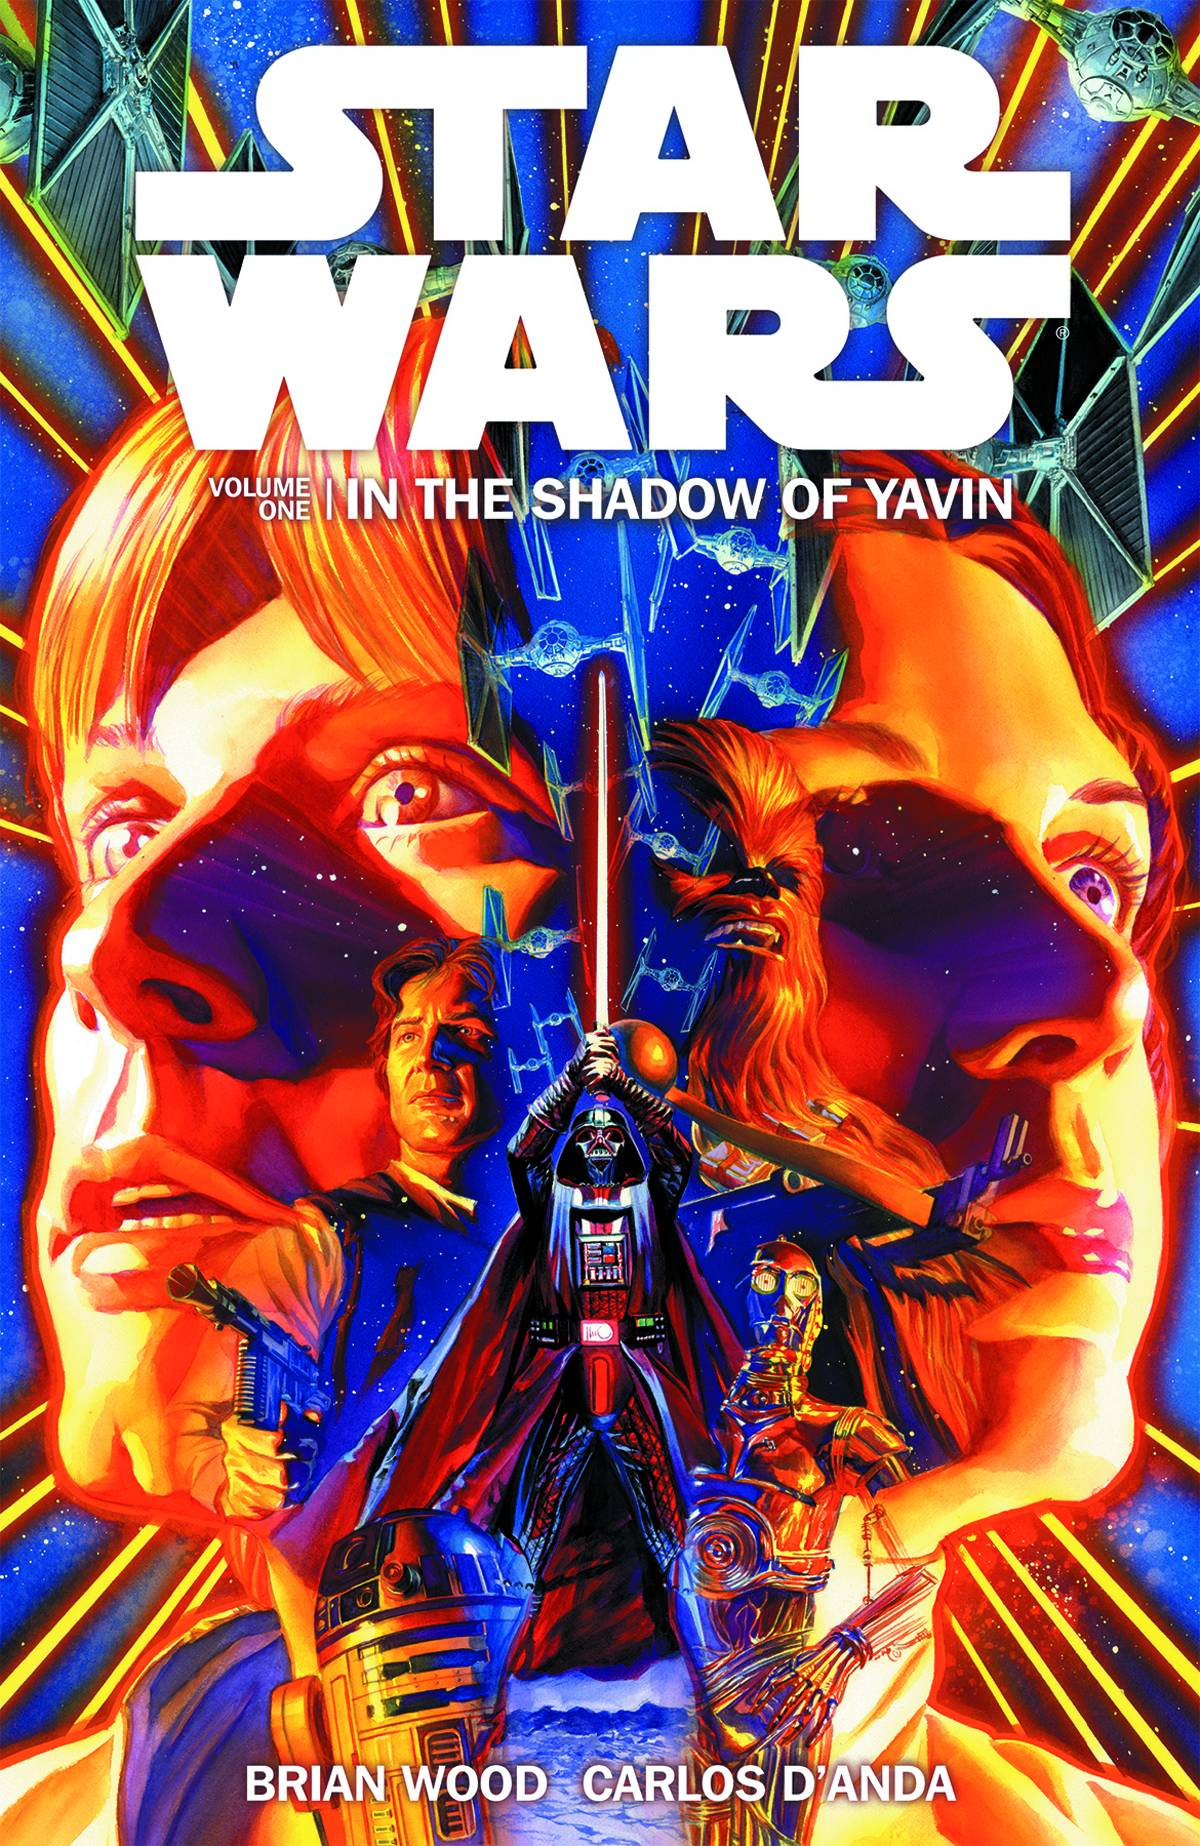 Comics and Pizza Book Club discussion of Star Wars, Vol. 1: In the Shadow of Yavin